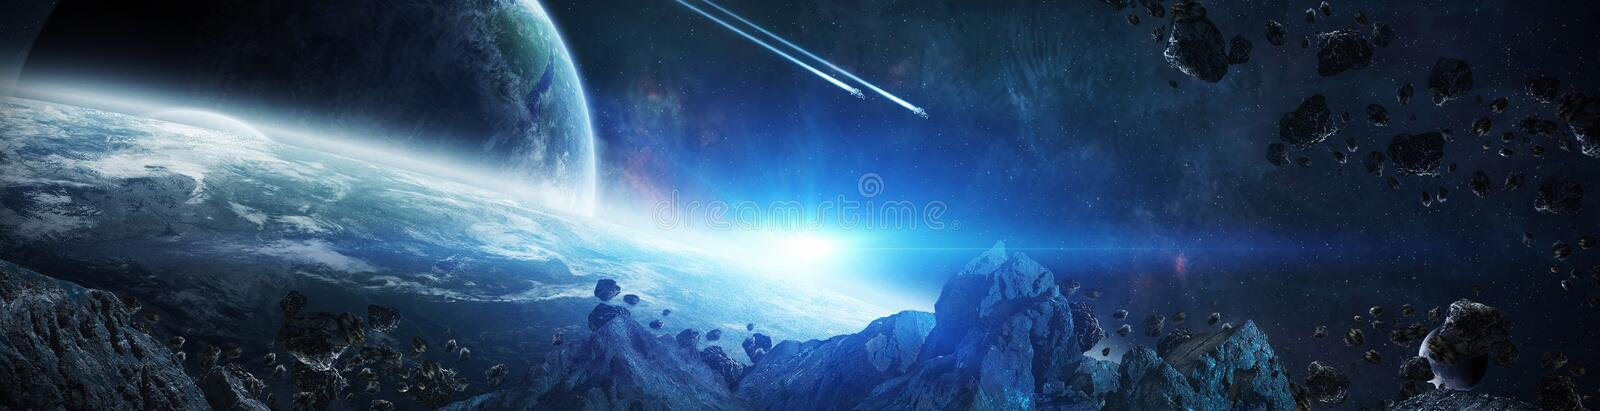 Panorama of distant planet system in space 3D rendering elements royalty free illustration